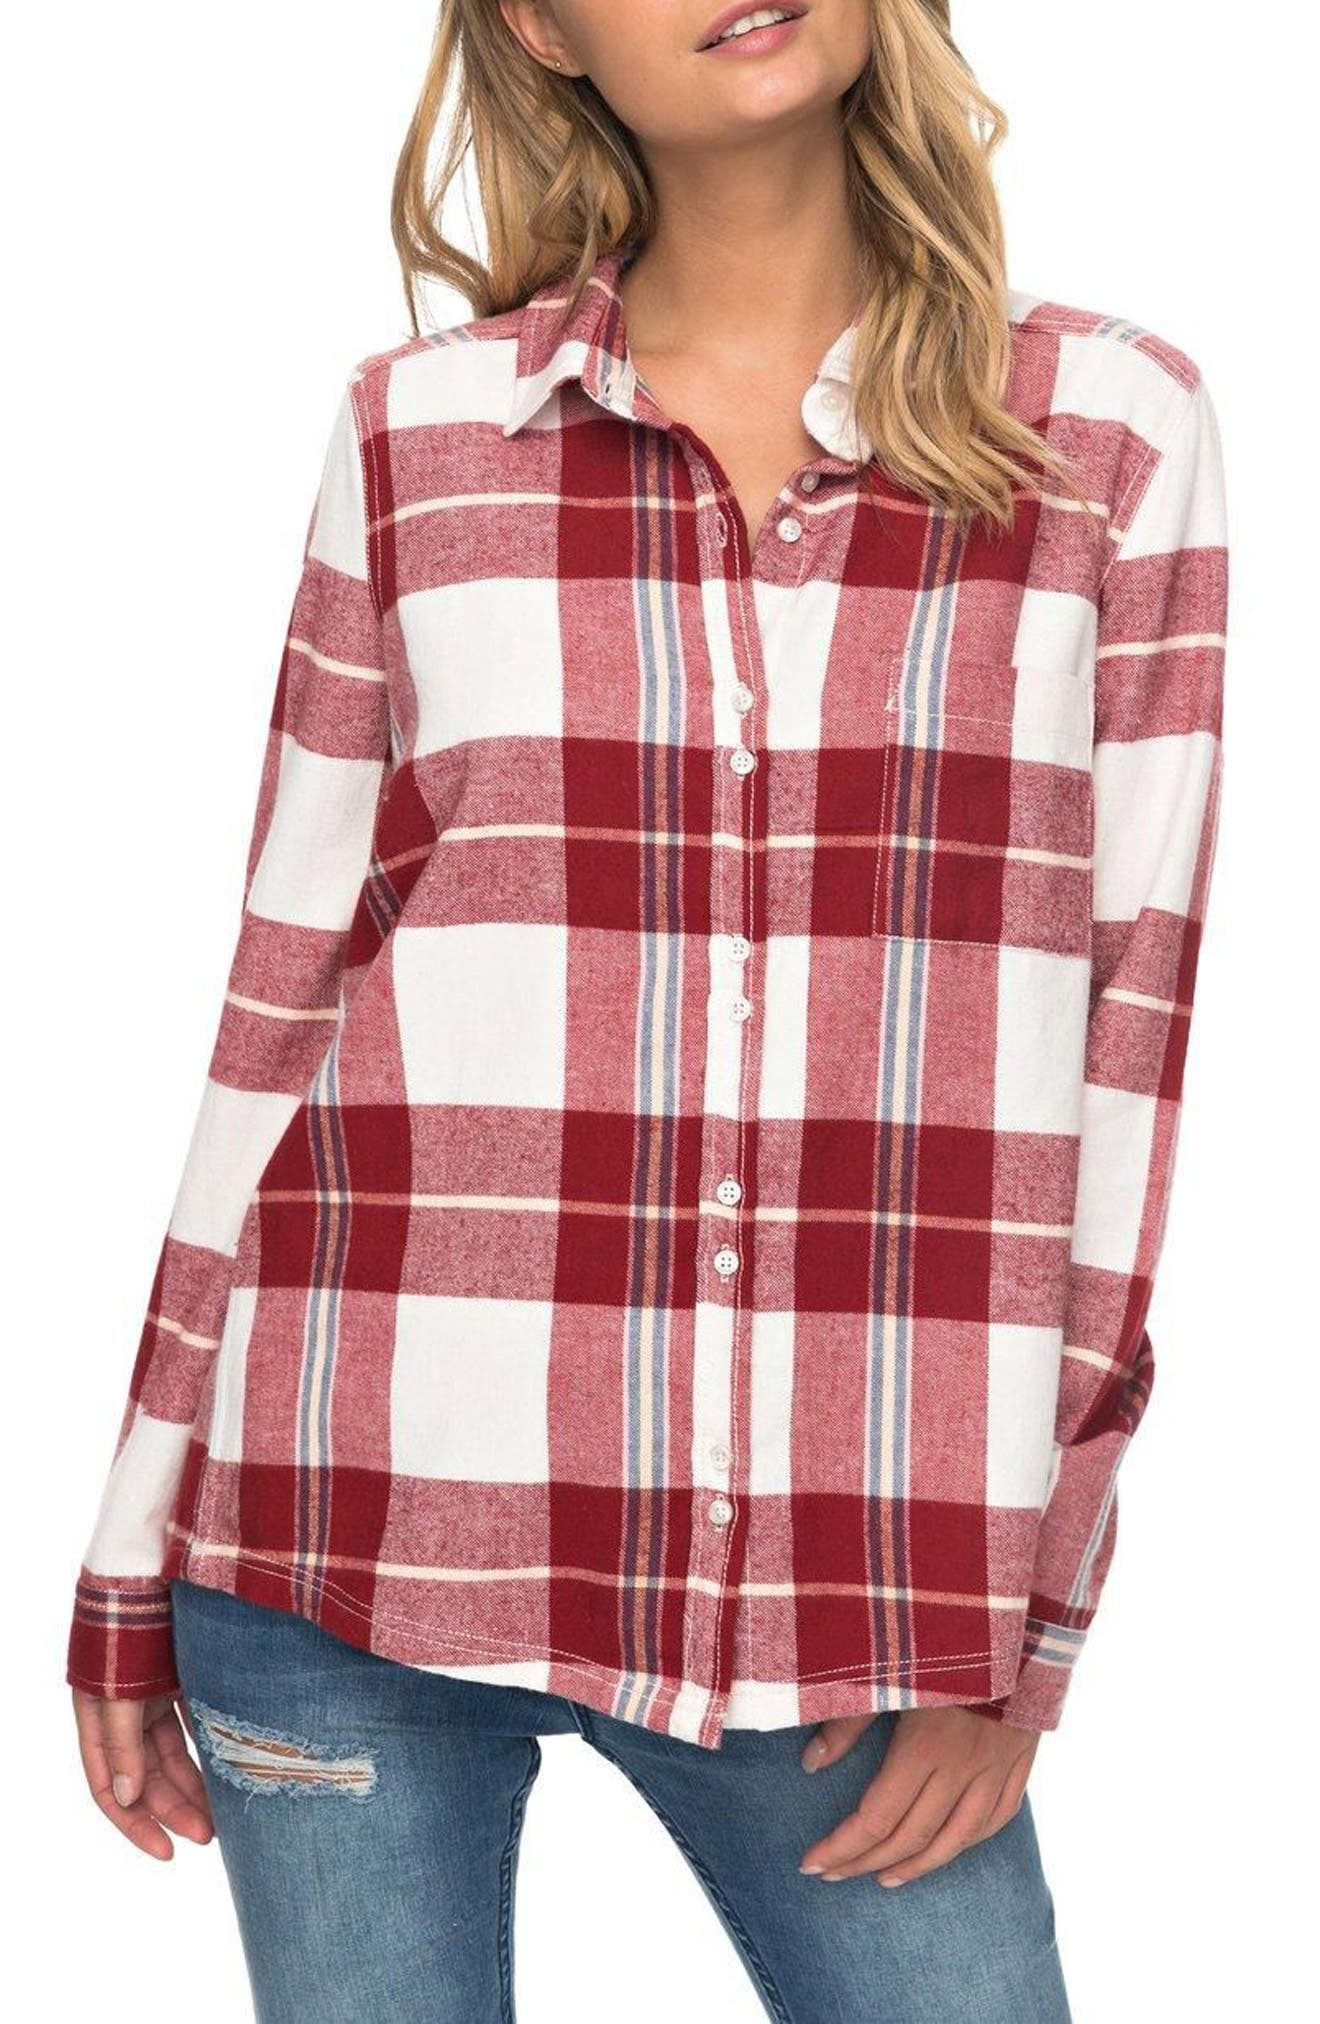 Roxy Heavy Feelings Plaid Cotton Shirt